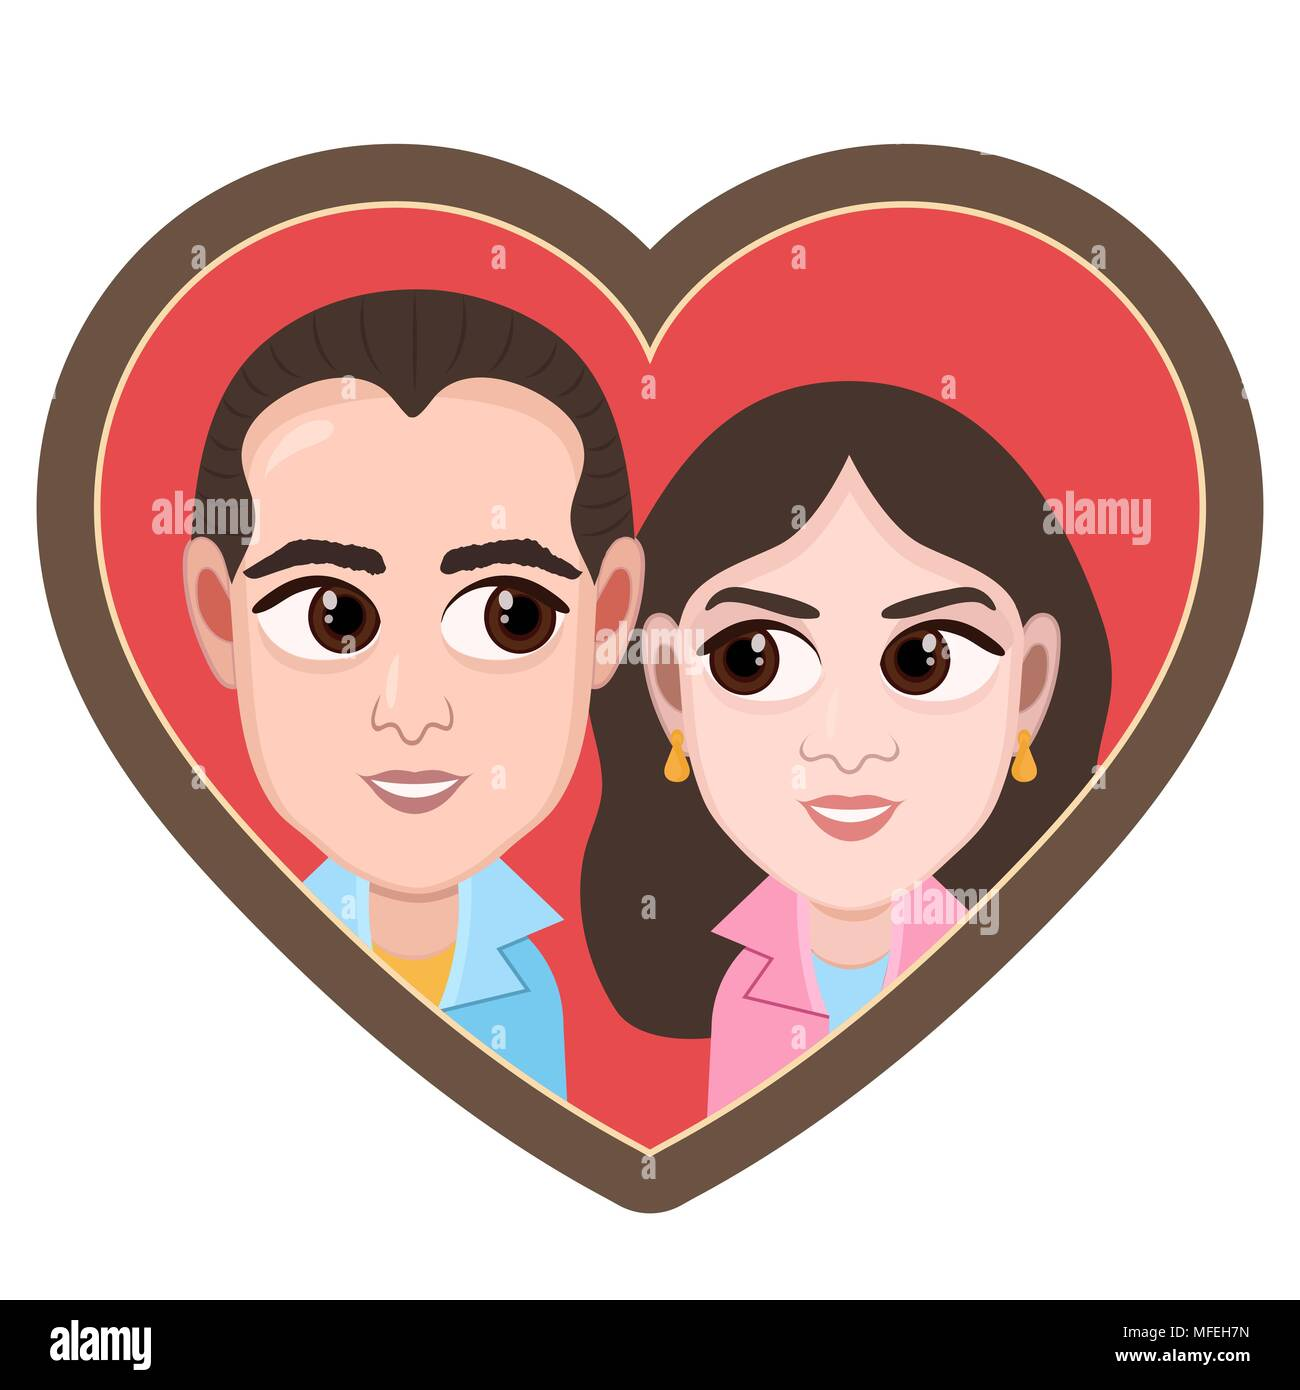 Cartoon Character Vector Drawing Portrait Lovers Couple Boy And Girl Icon Sticker Loving Man And Woman With Big Eyes Looking At Each Other In Hear